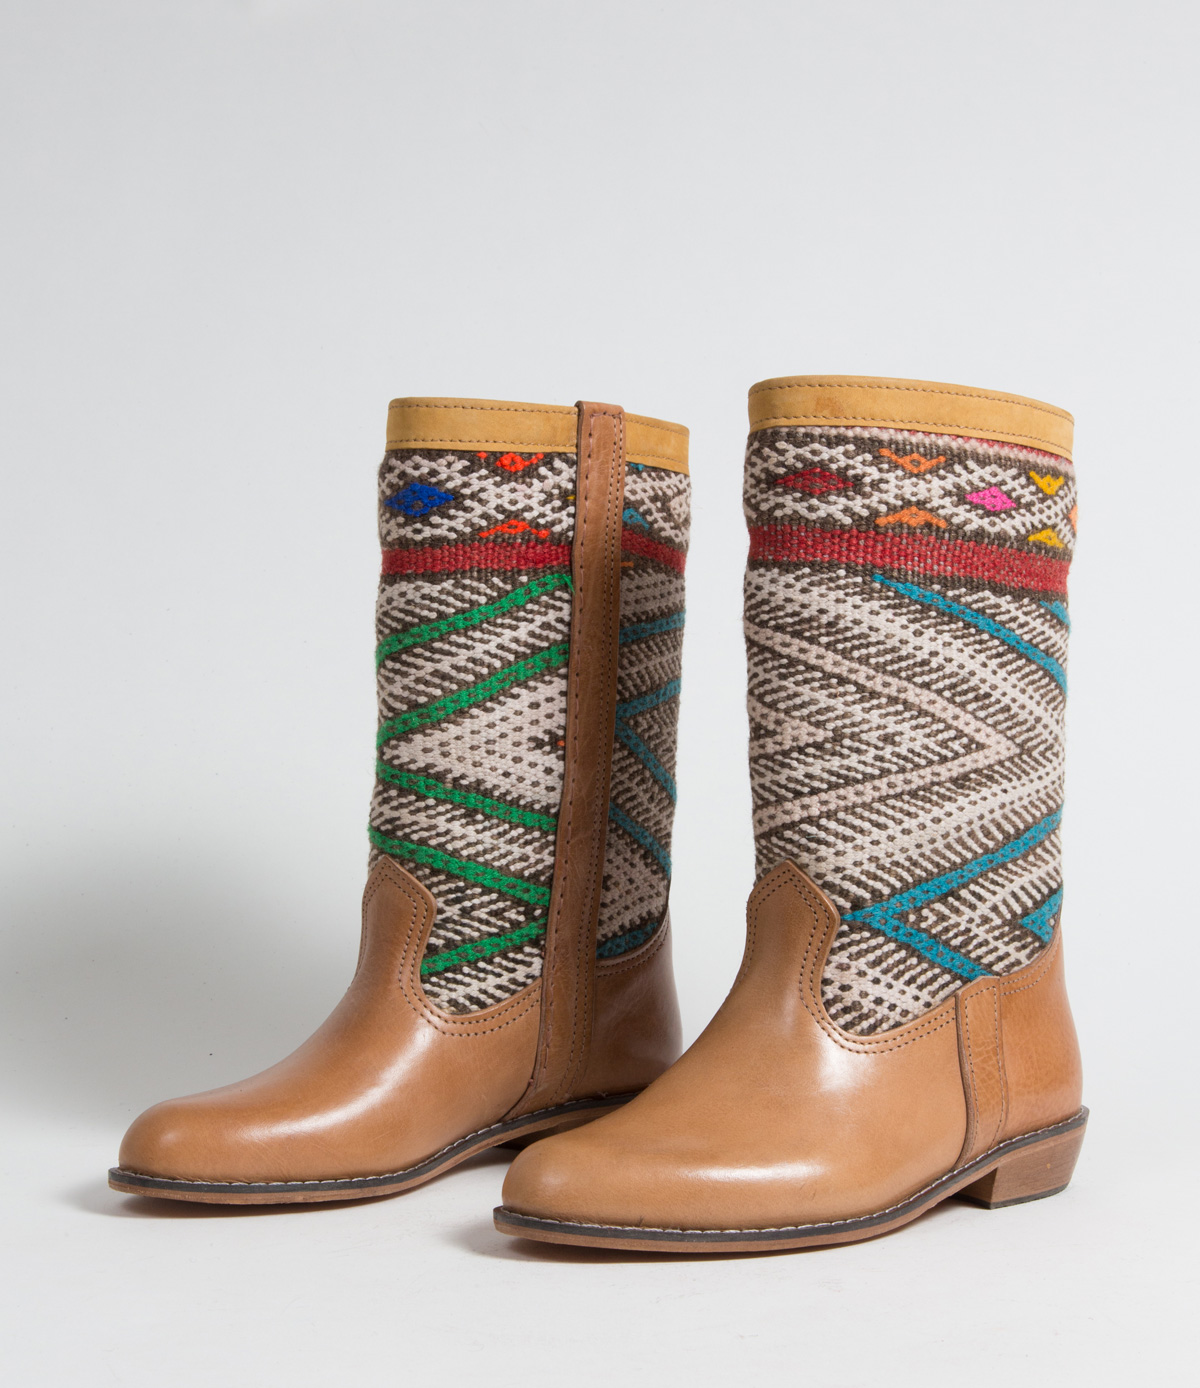 Bottes Kilim cuir mababouche artisanales (Réf. MCL1-38)